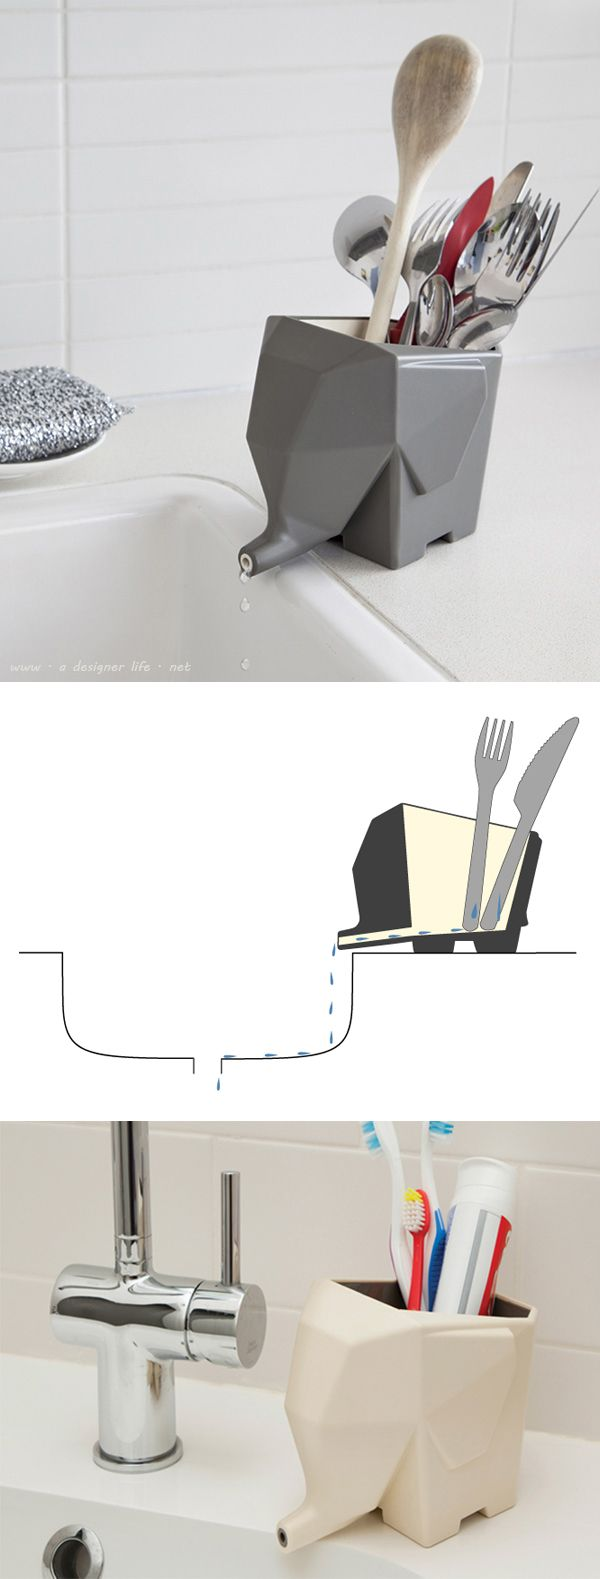 Elephant Cutlery Drainer by Peleg  I'm certain I NEED this!!